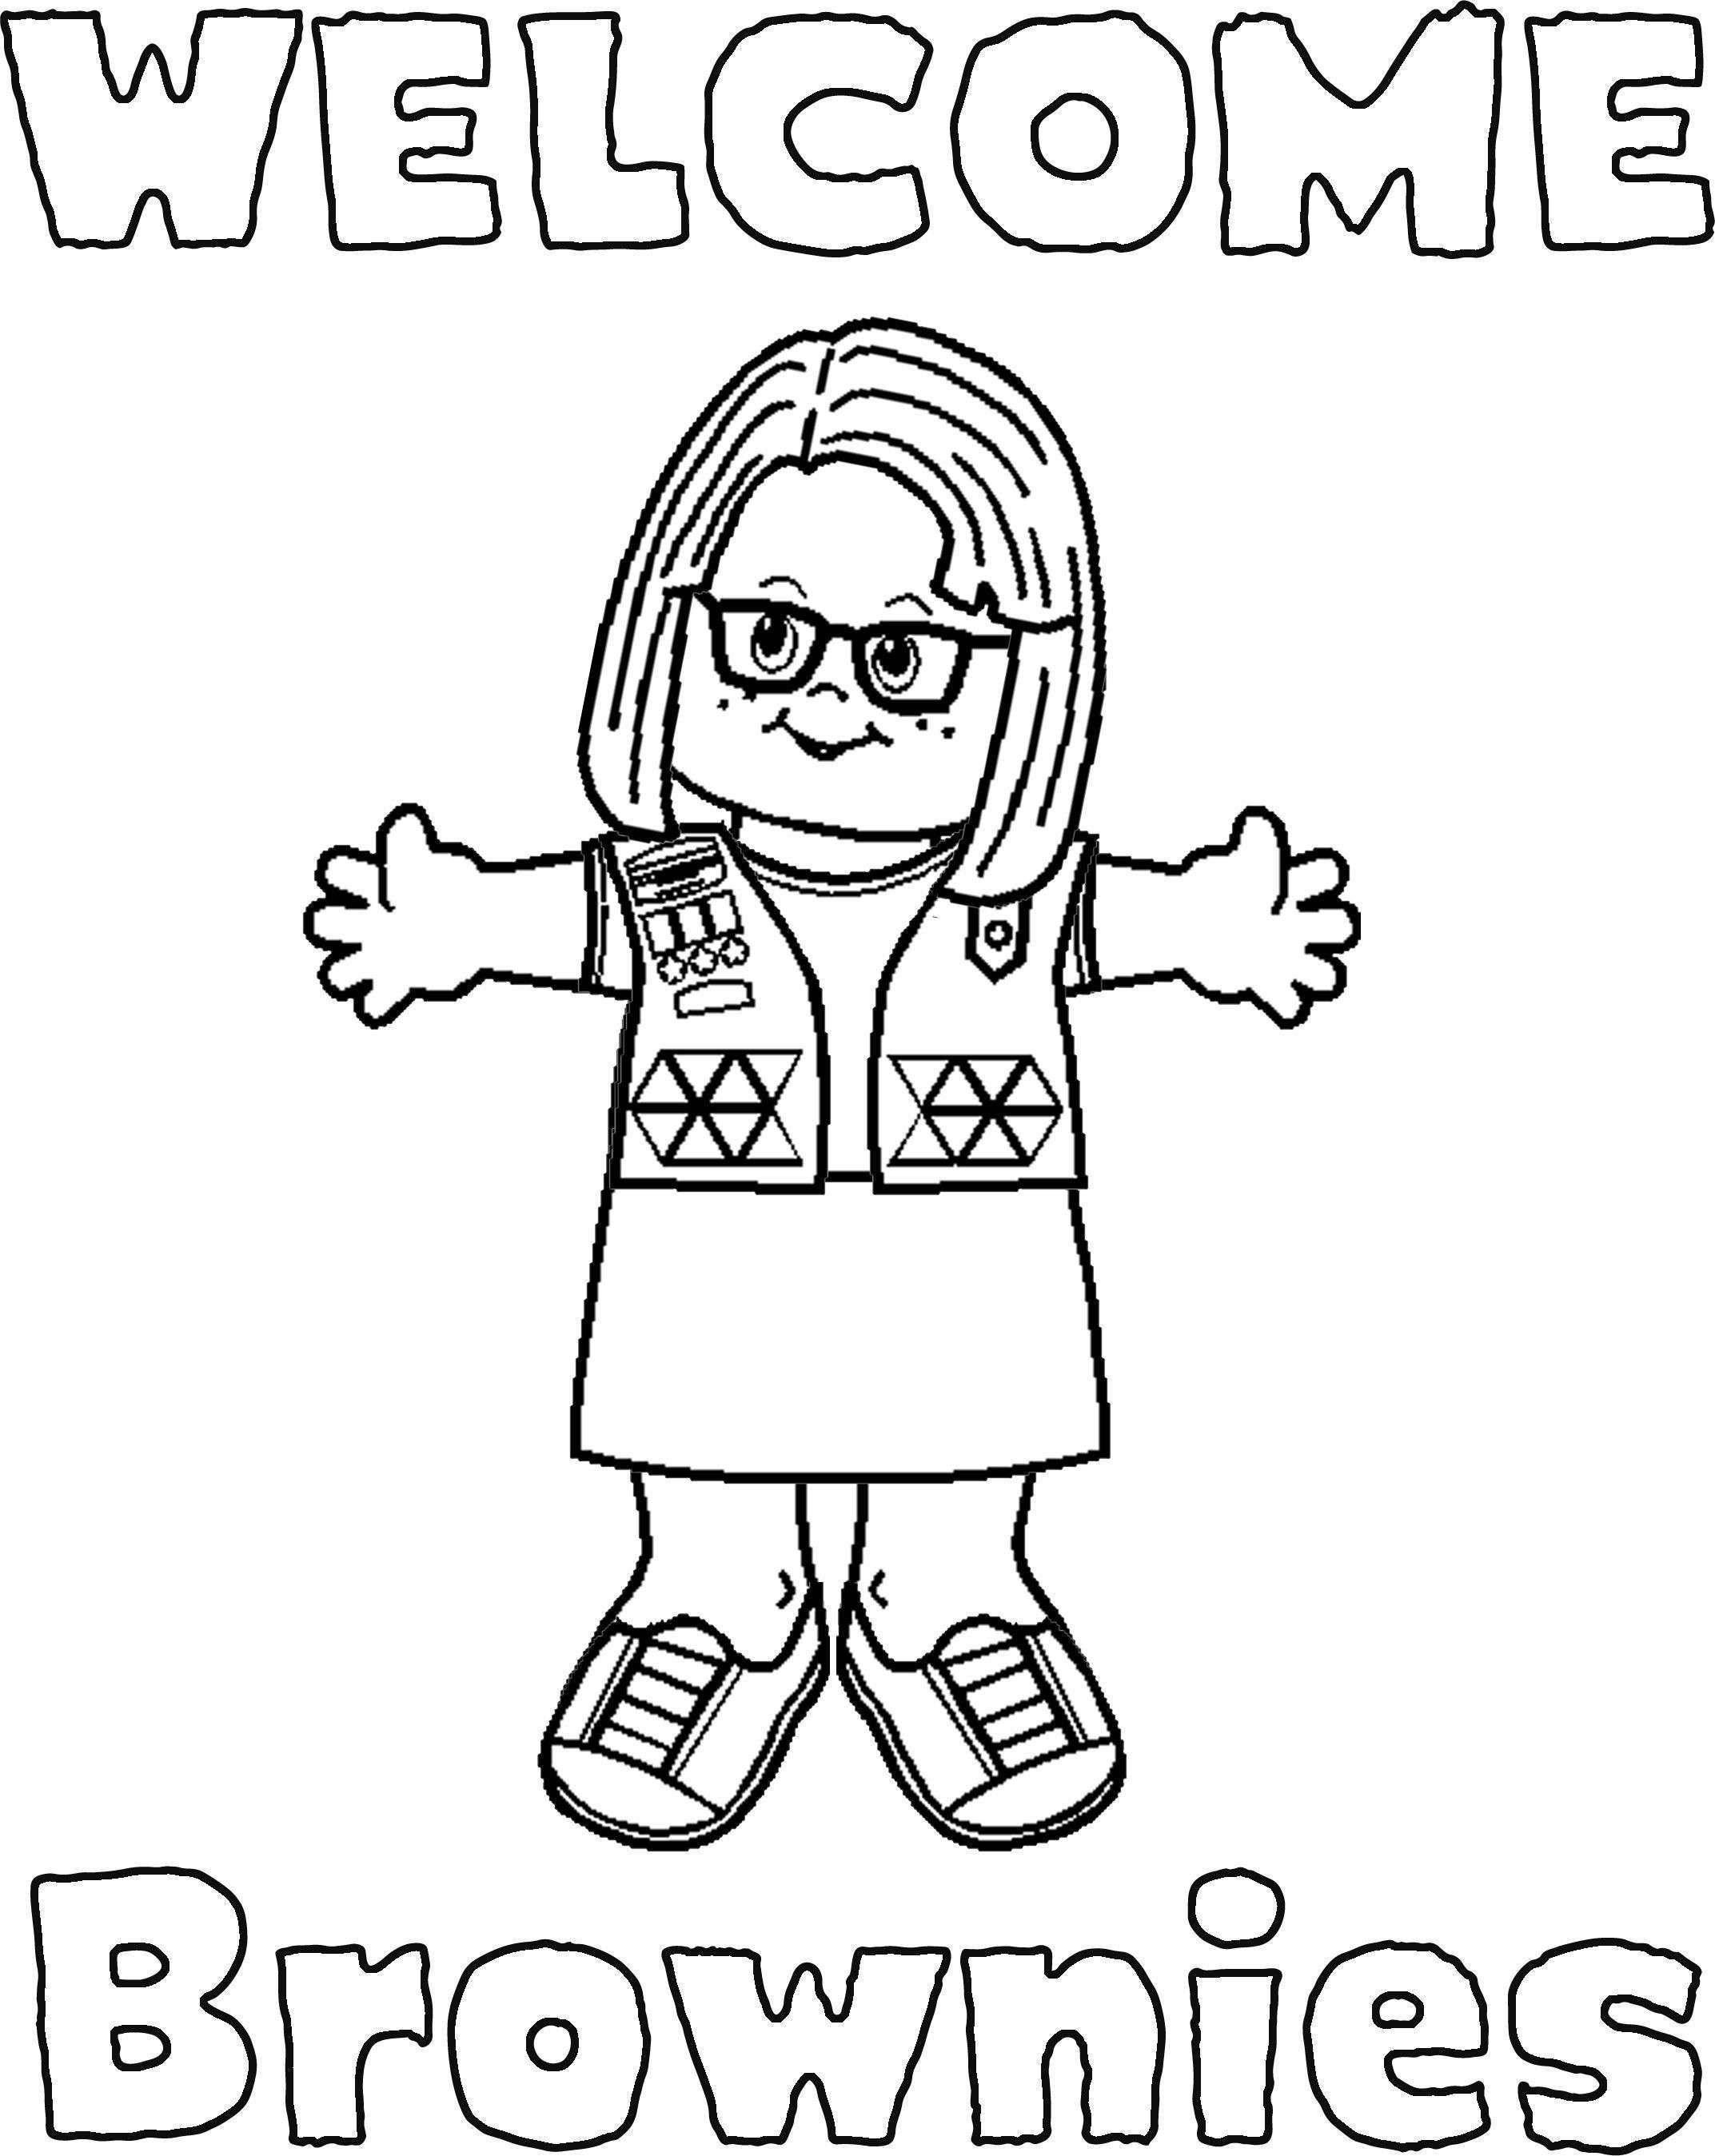 Girl Scout Law Coloring Pages Gallery